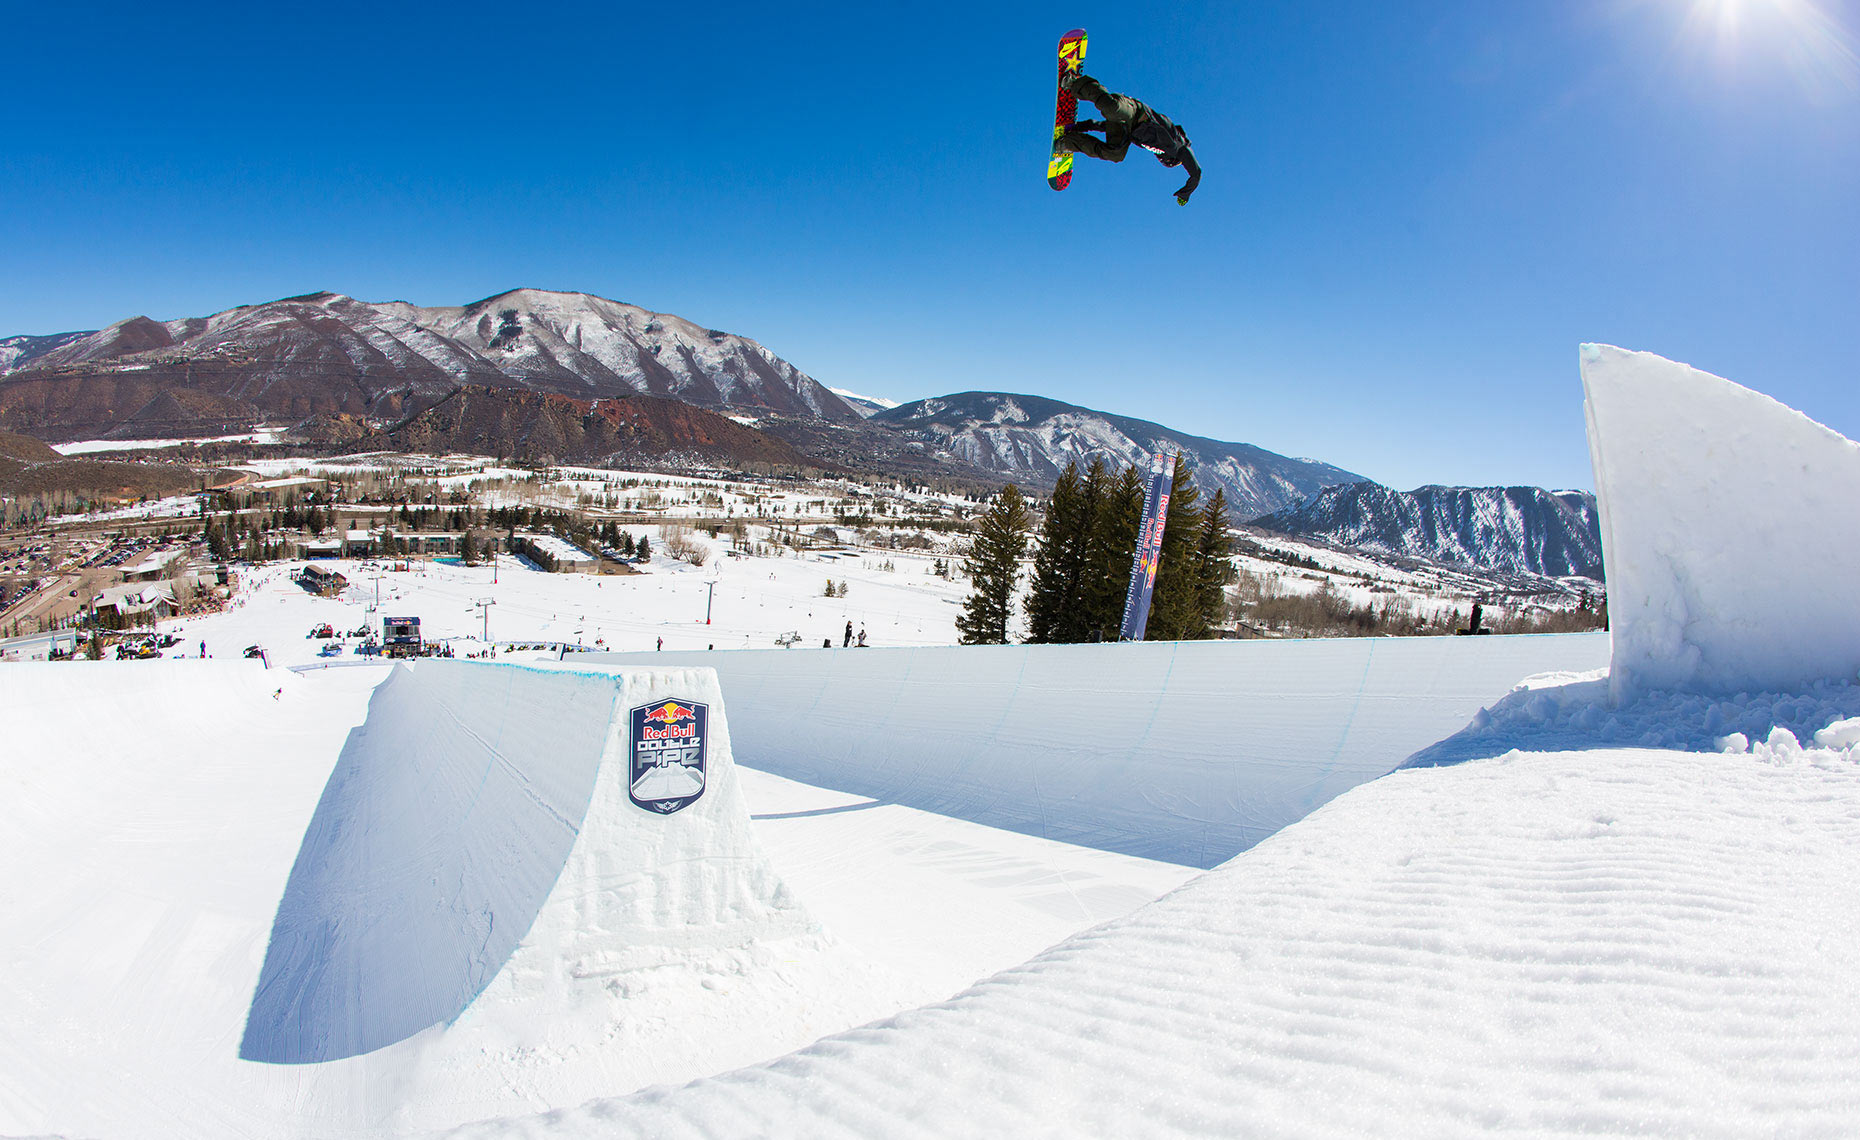 42__Matt-Ladley-Double-Pipe-Aspen-Chris-Wellhausen-02